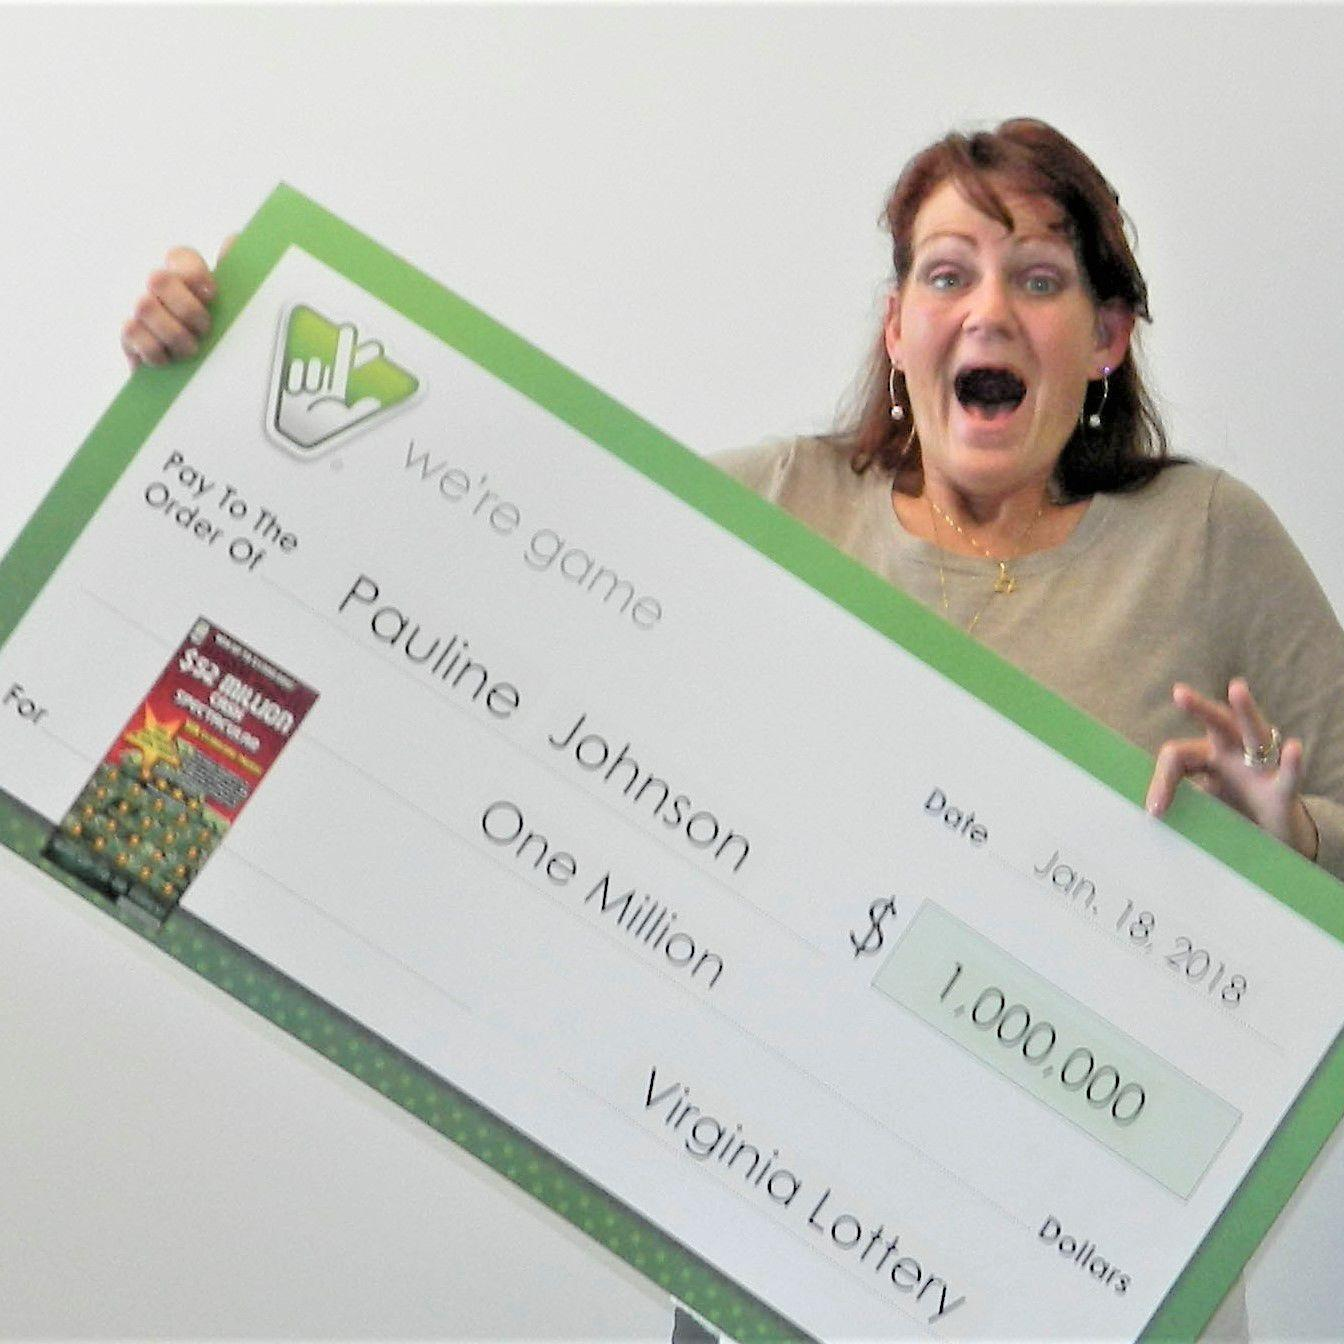 Woman wins $1 million on lottery ticket she bought at